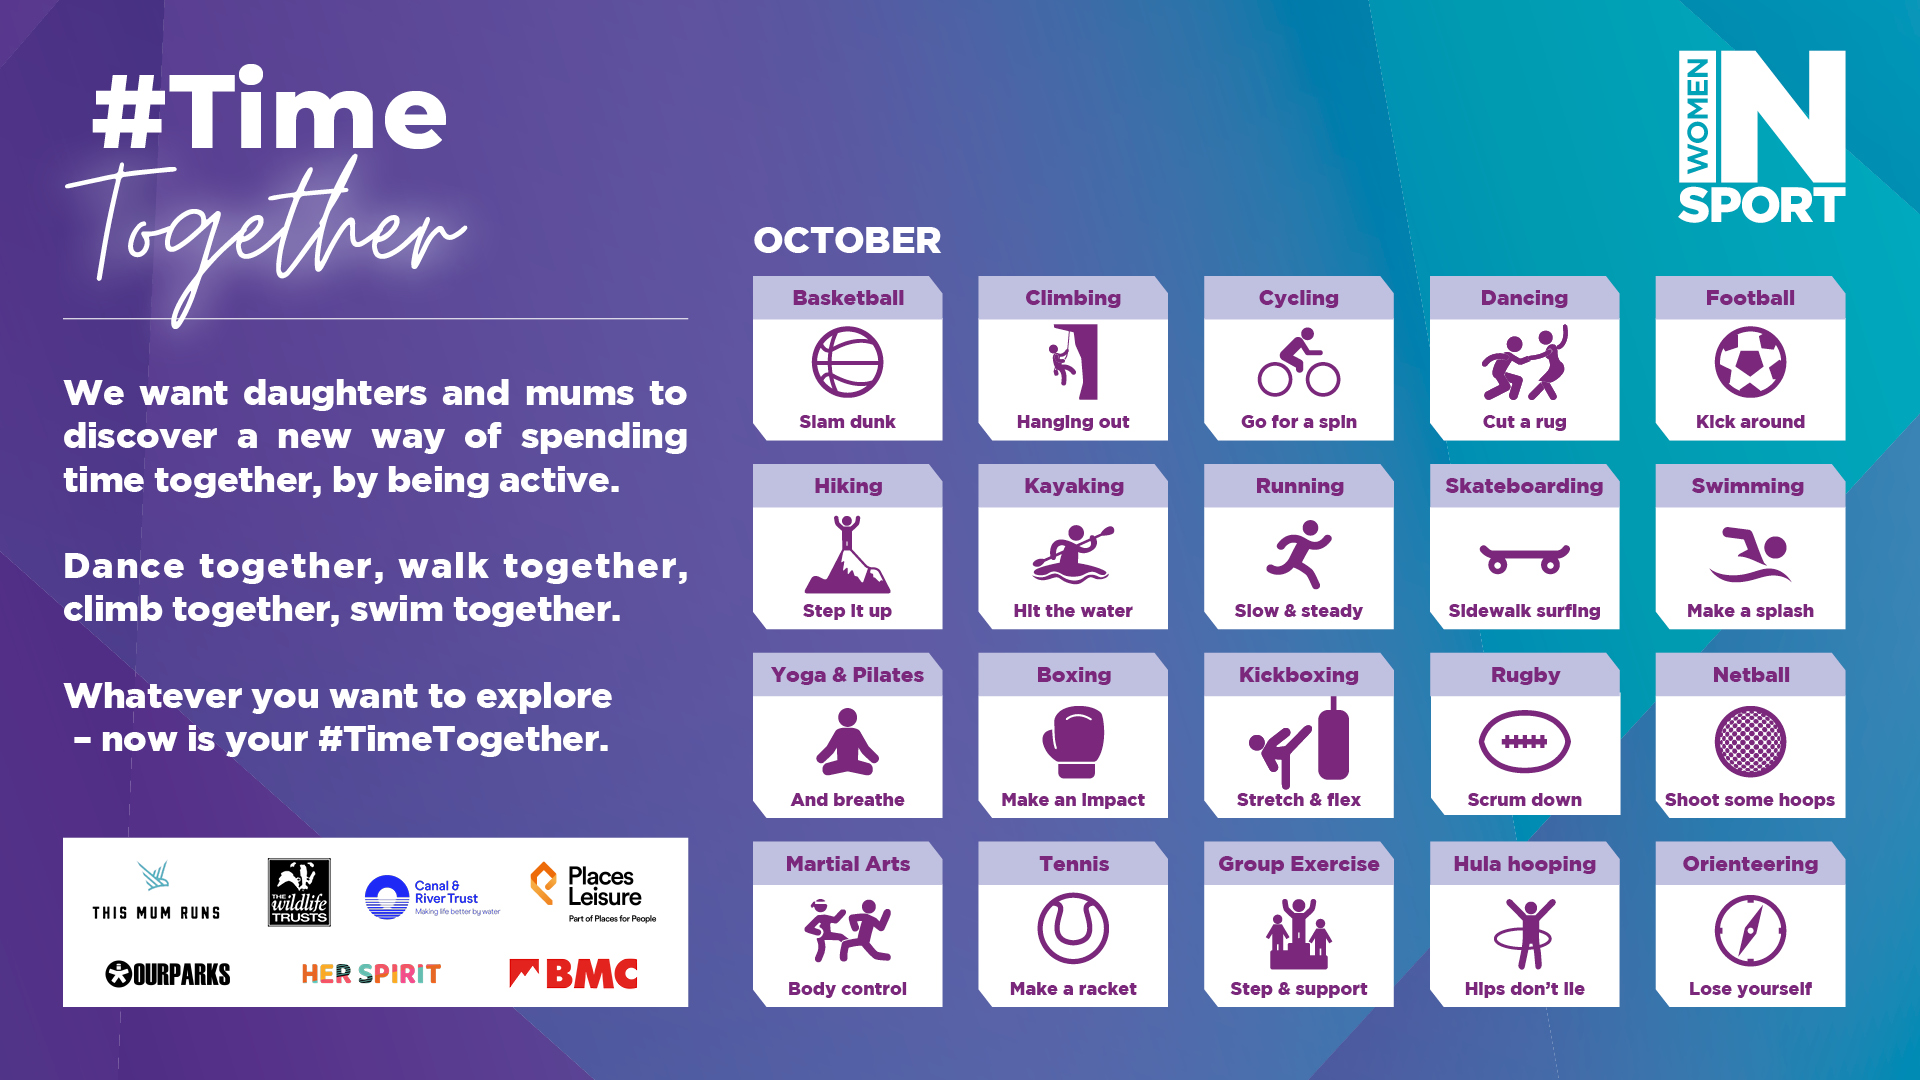 #TimeTogether infographic of activities